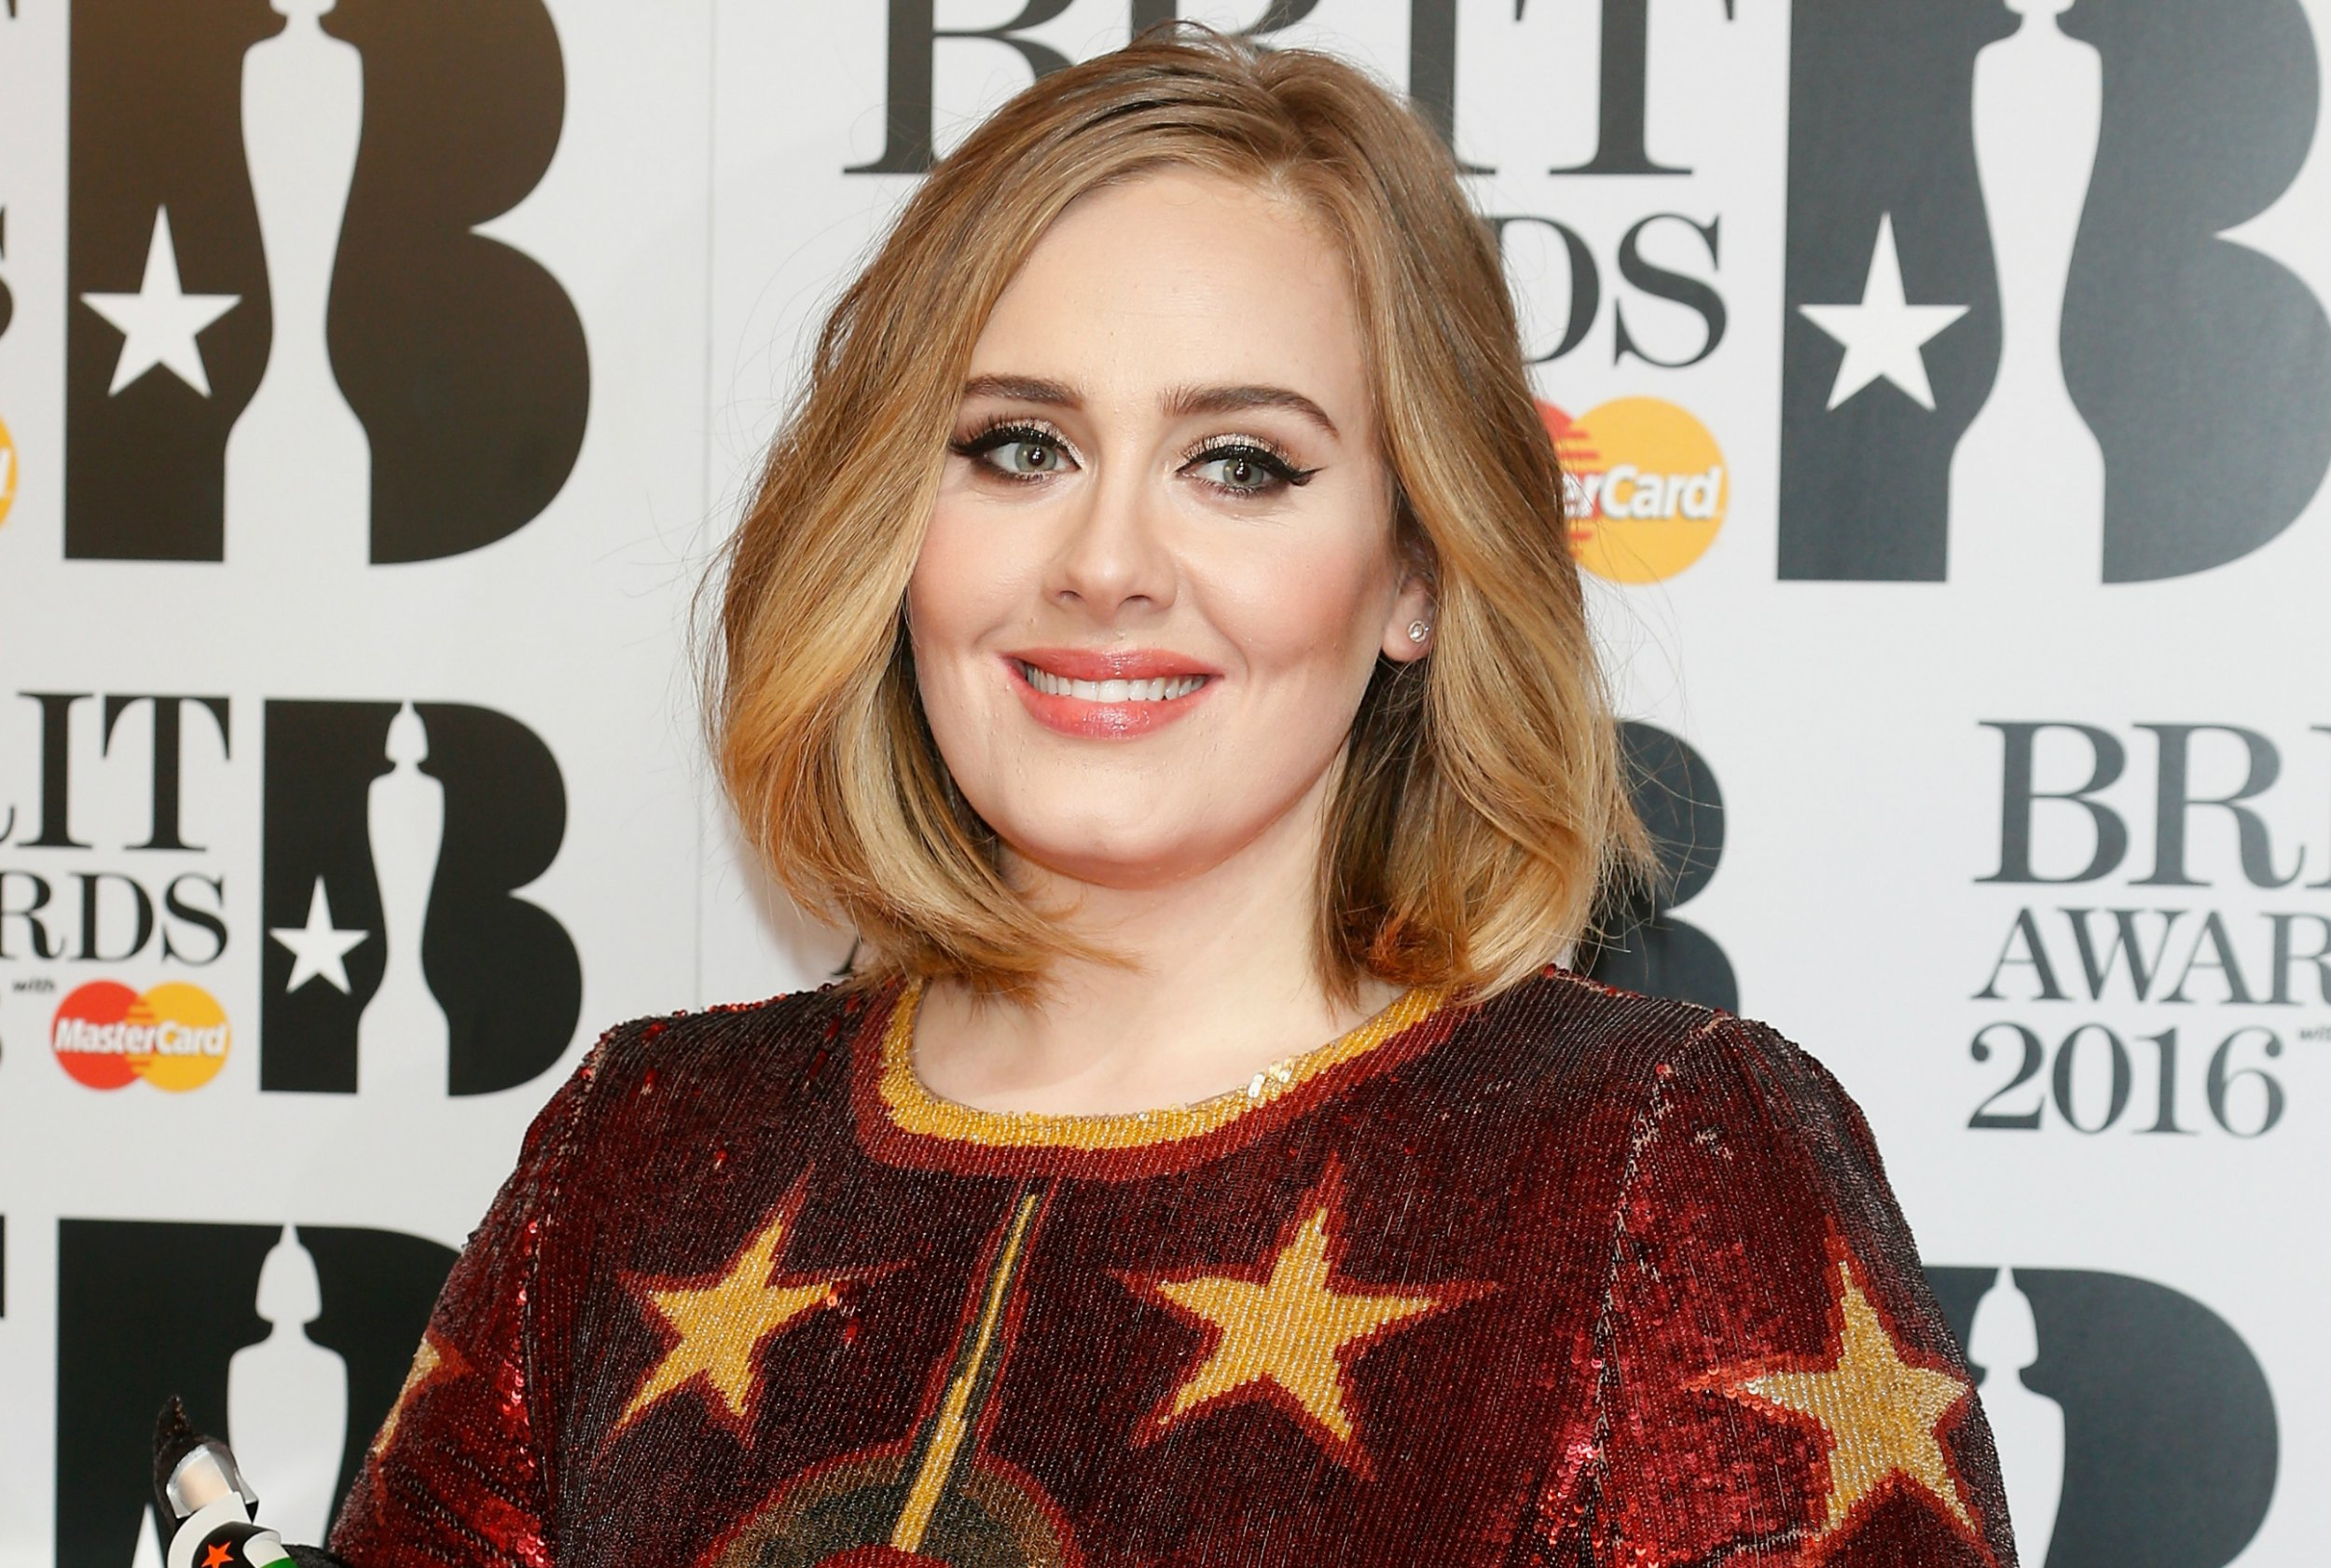 Adele at the Brit Awards 2016